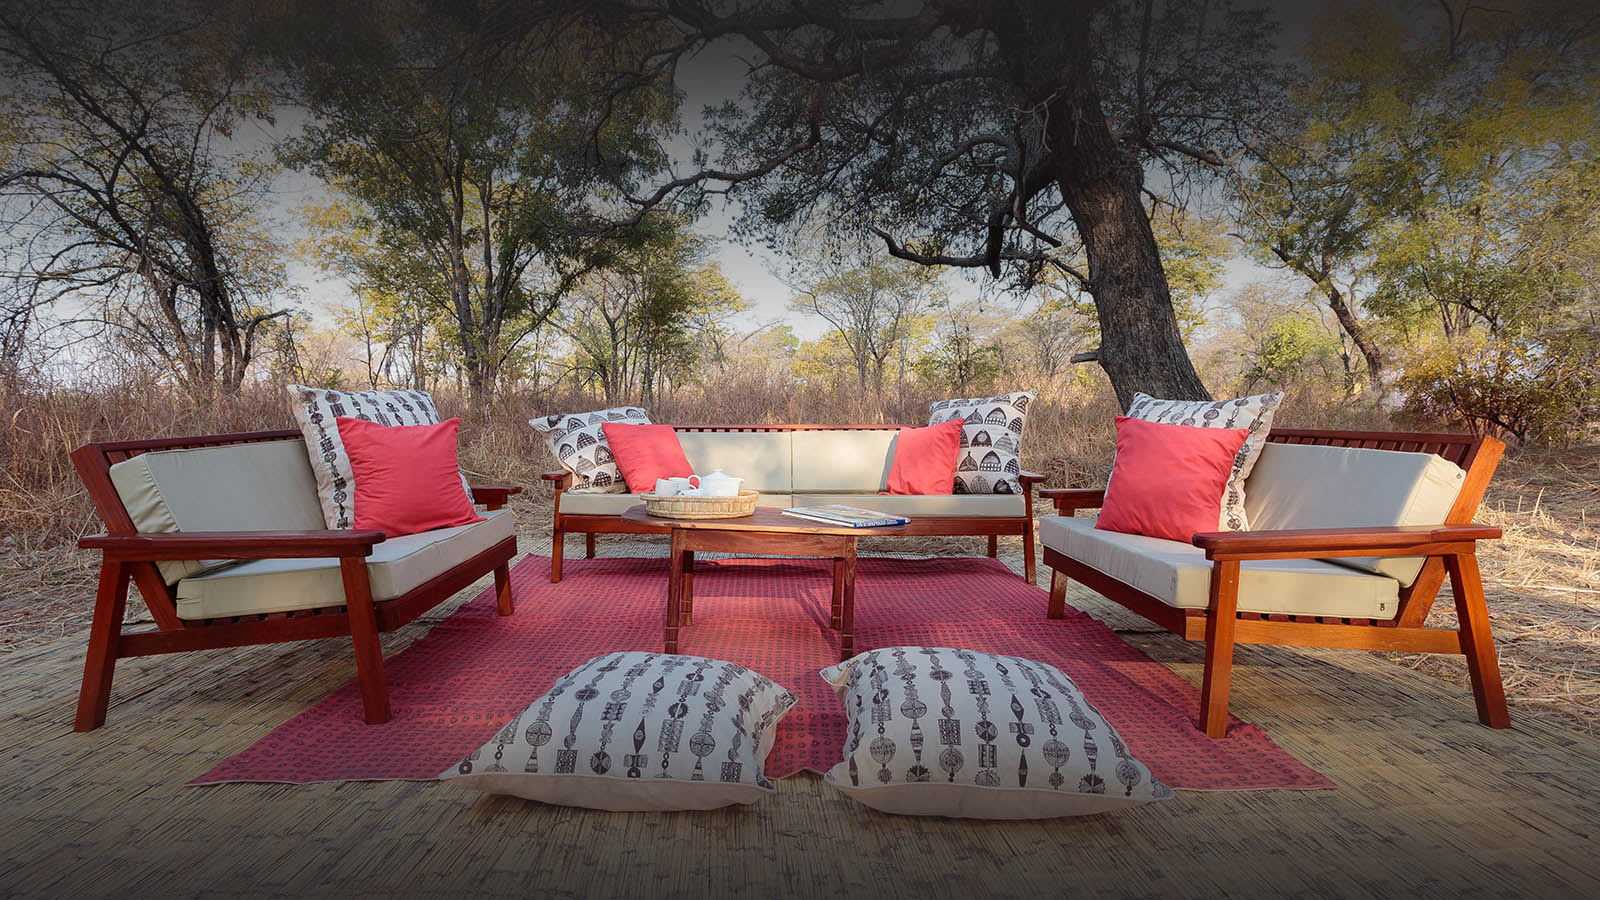 nkonzi-camp-lodge-zambia-in-style-safari-packages-lodges-explore-south-luangwa-national-park-bush-lounge